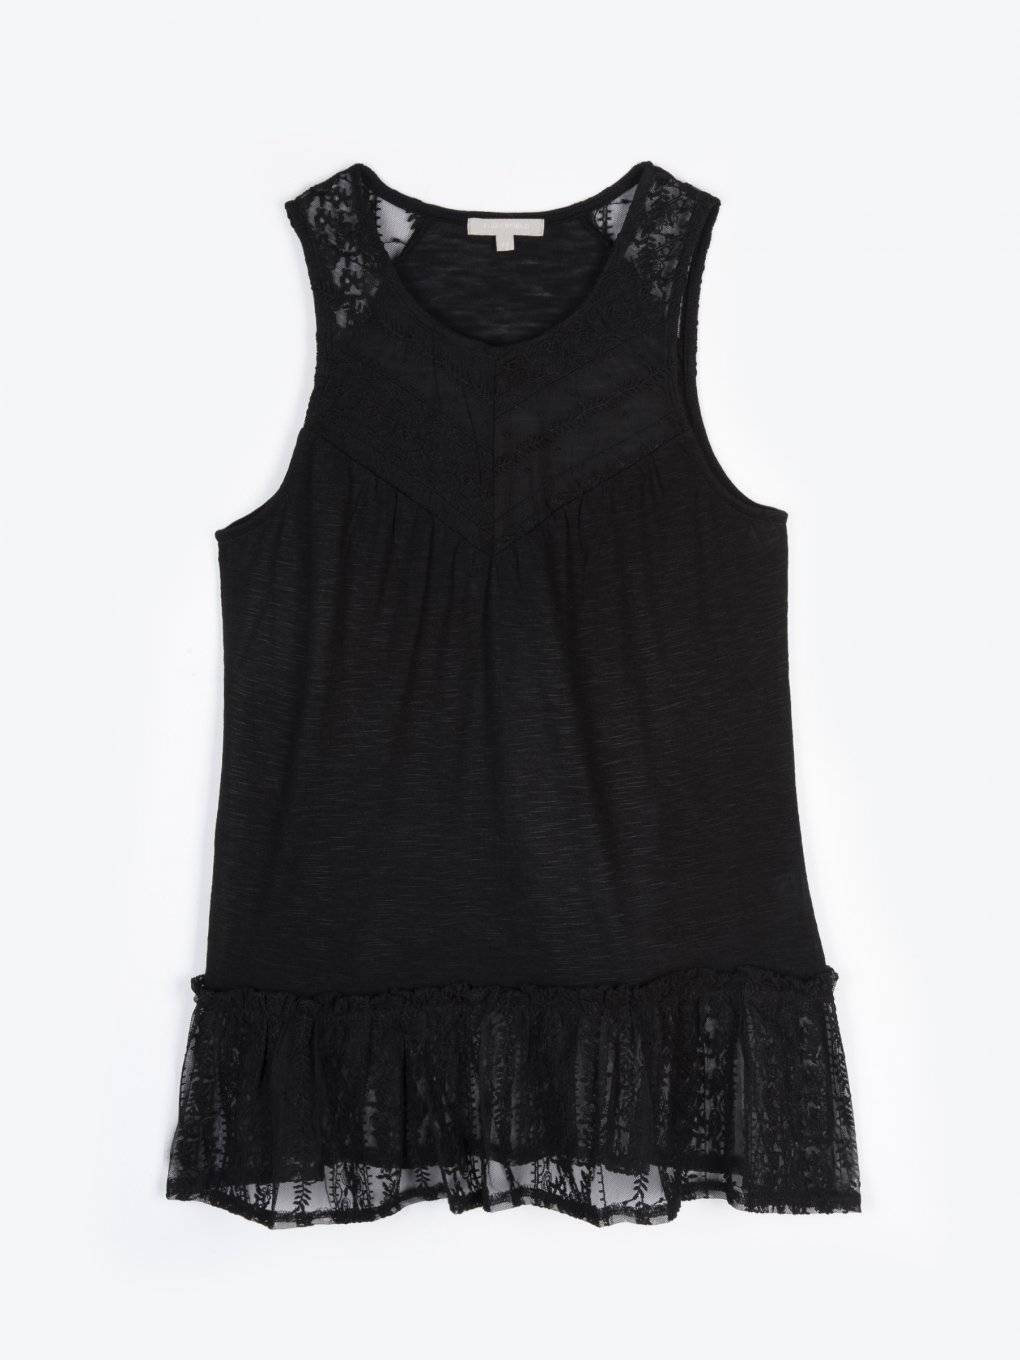 Lace tank with ruffle